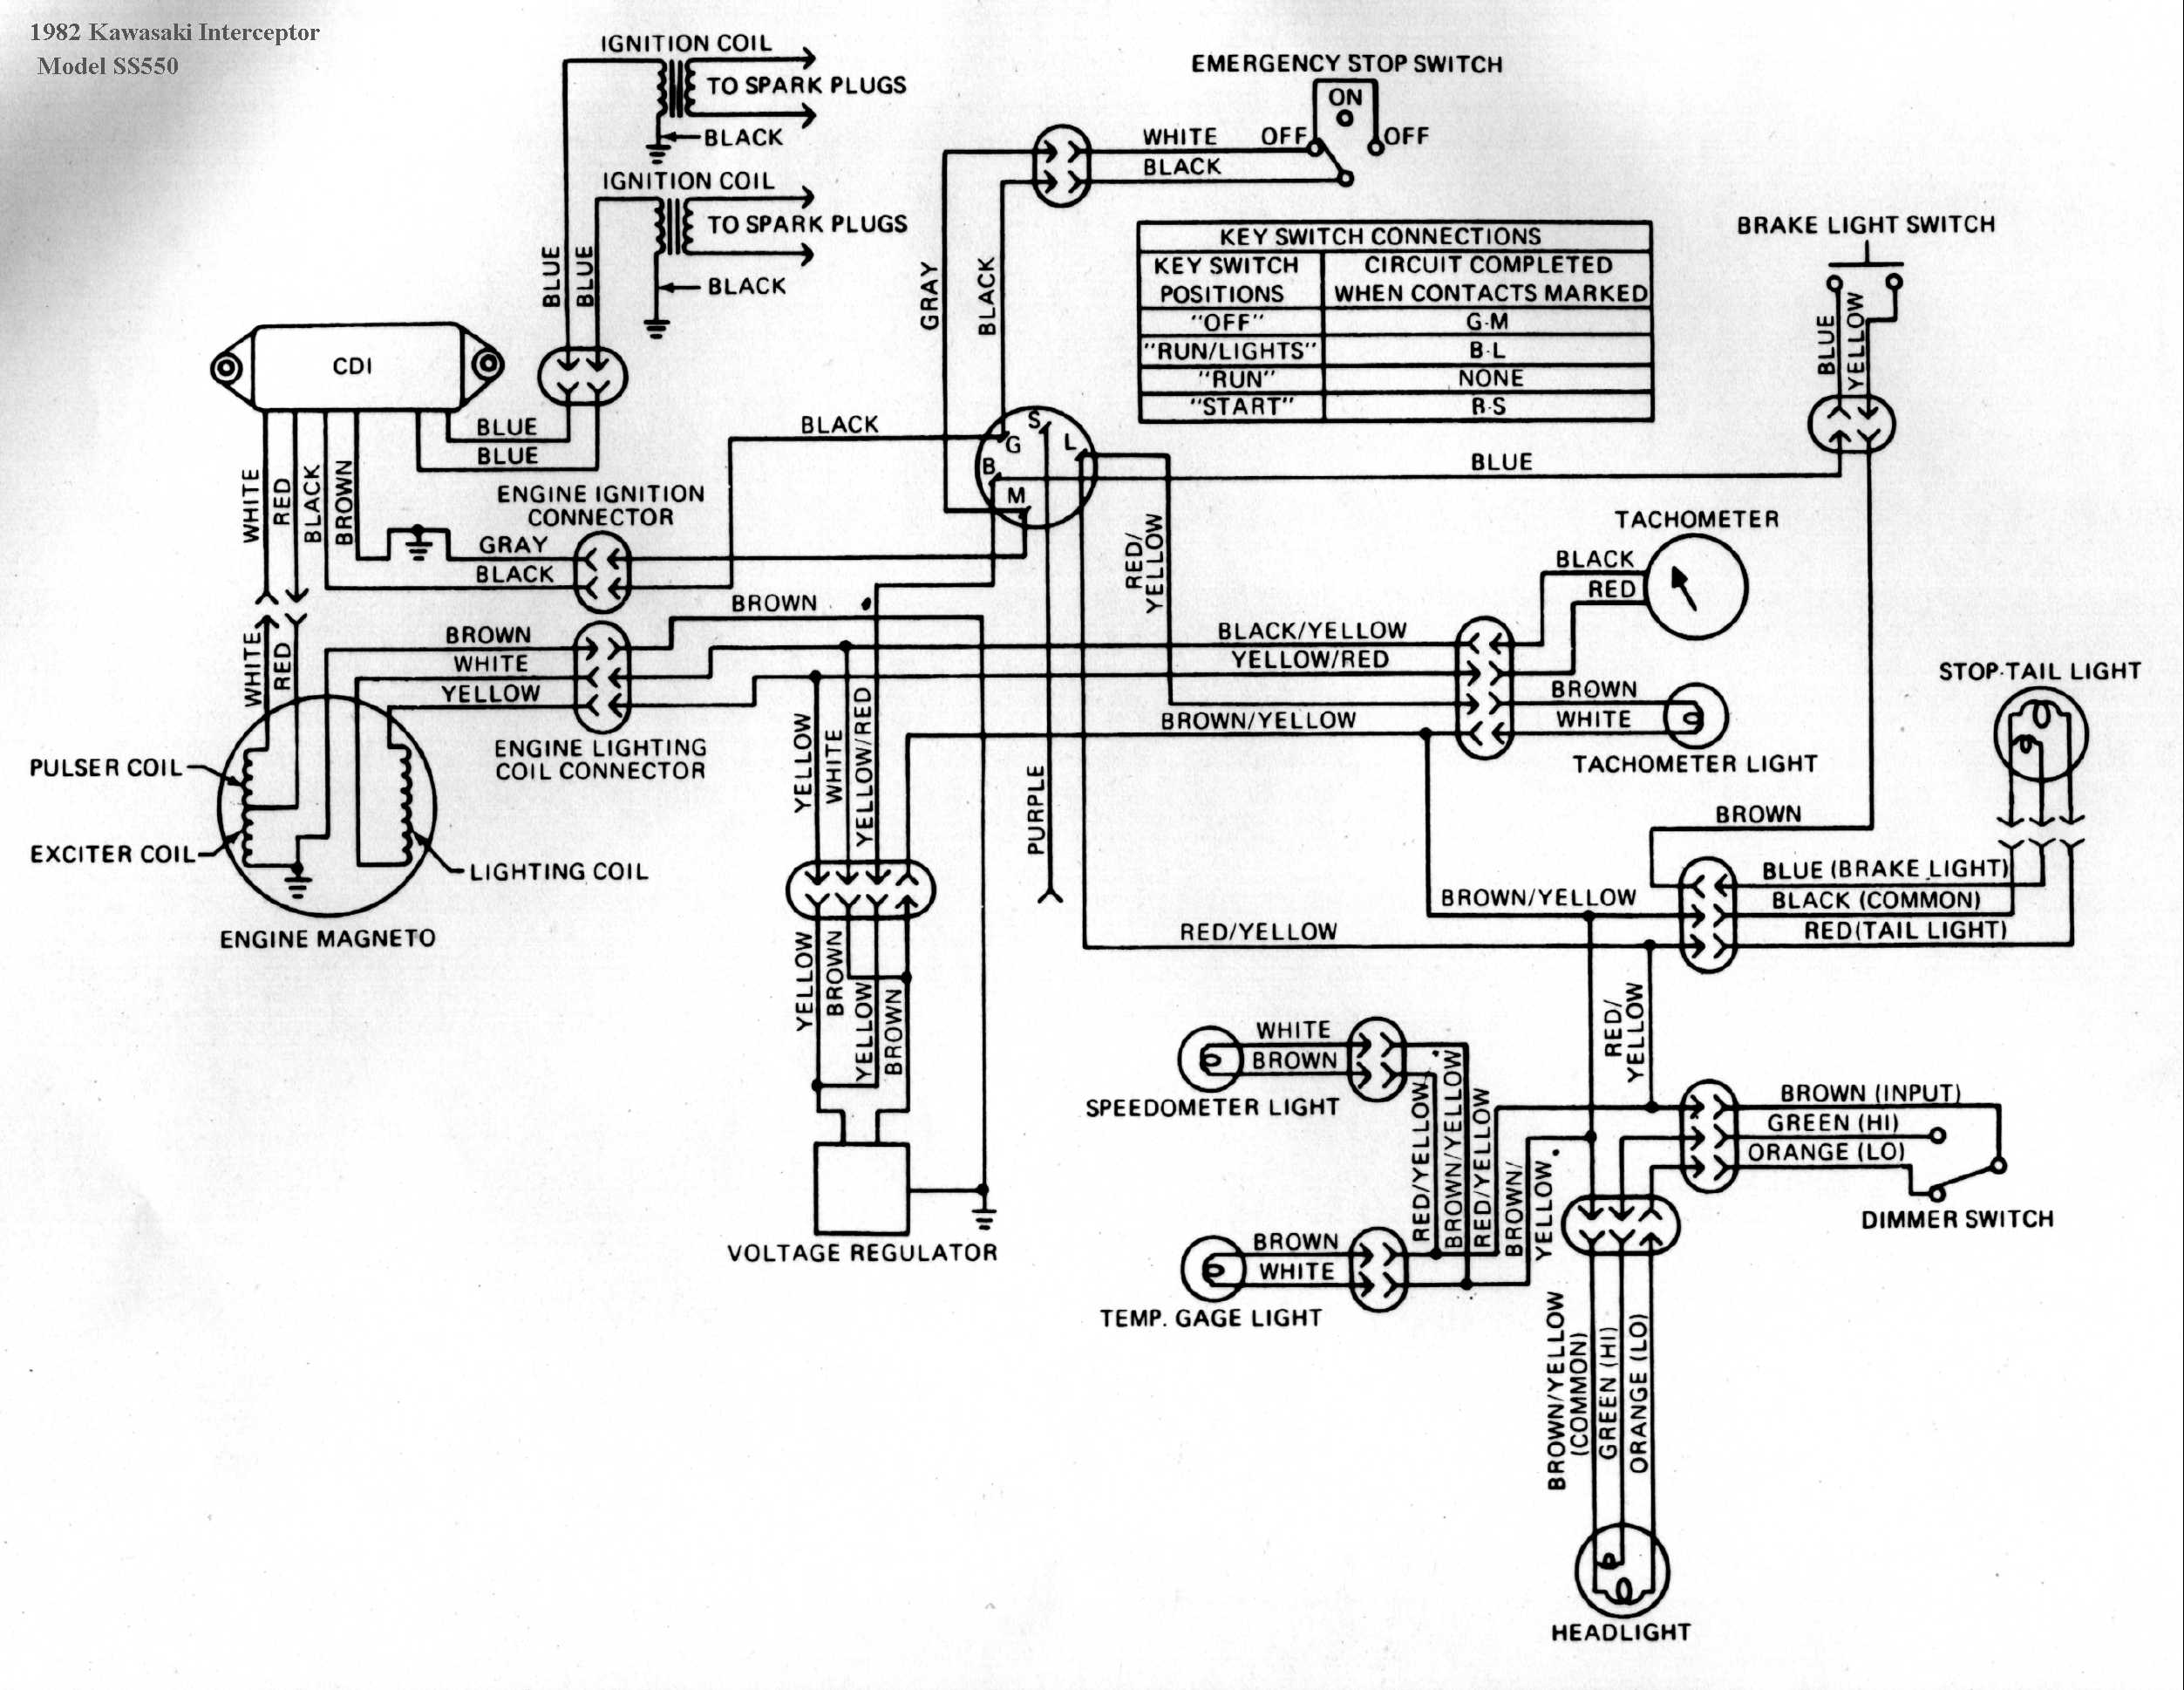 ss550 2009 kawasaki mule 4010 wiring diagram 2009 kawasaki mule 4010 1981 kawasaki 440 ltd wiring diagram at bayanpartner.co